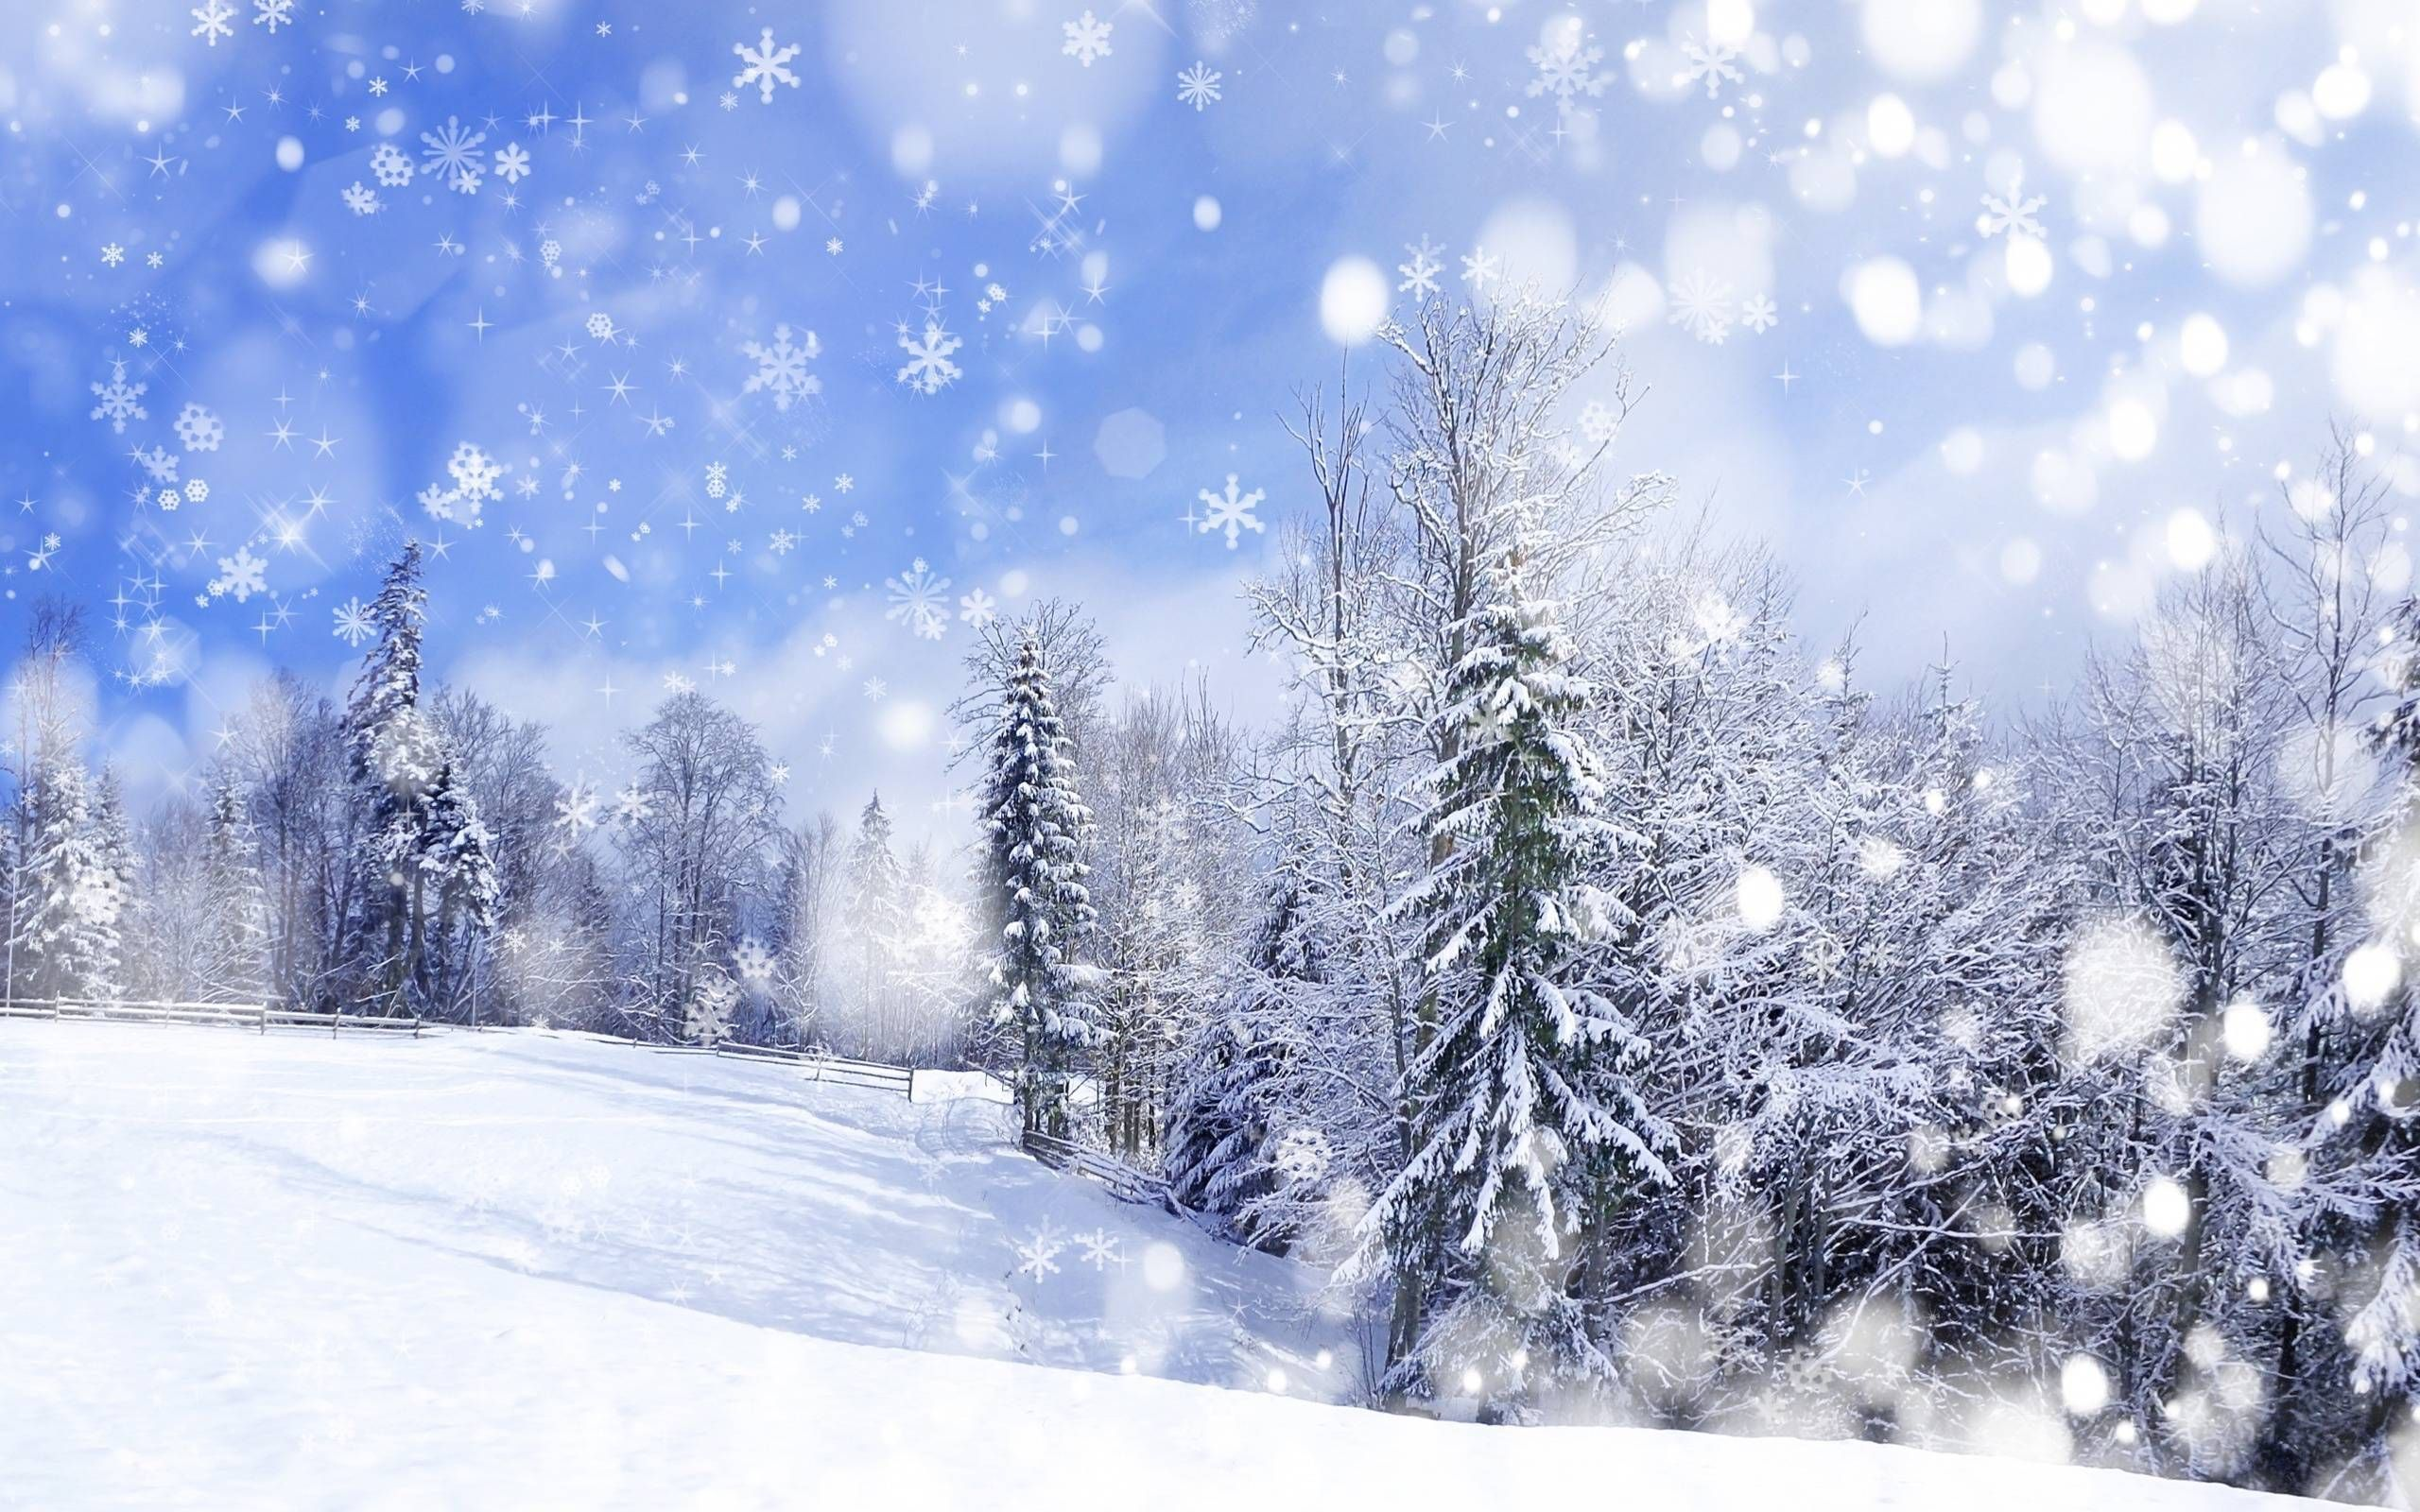 Anime Winter Scenery Wallpaper-1 | Winter scenery, Winter wallpaper,  Scenery wallpaper